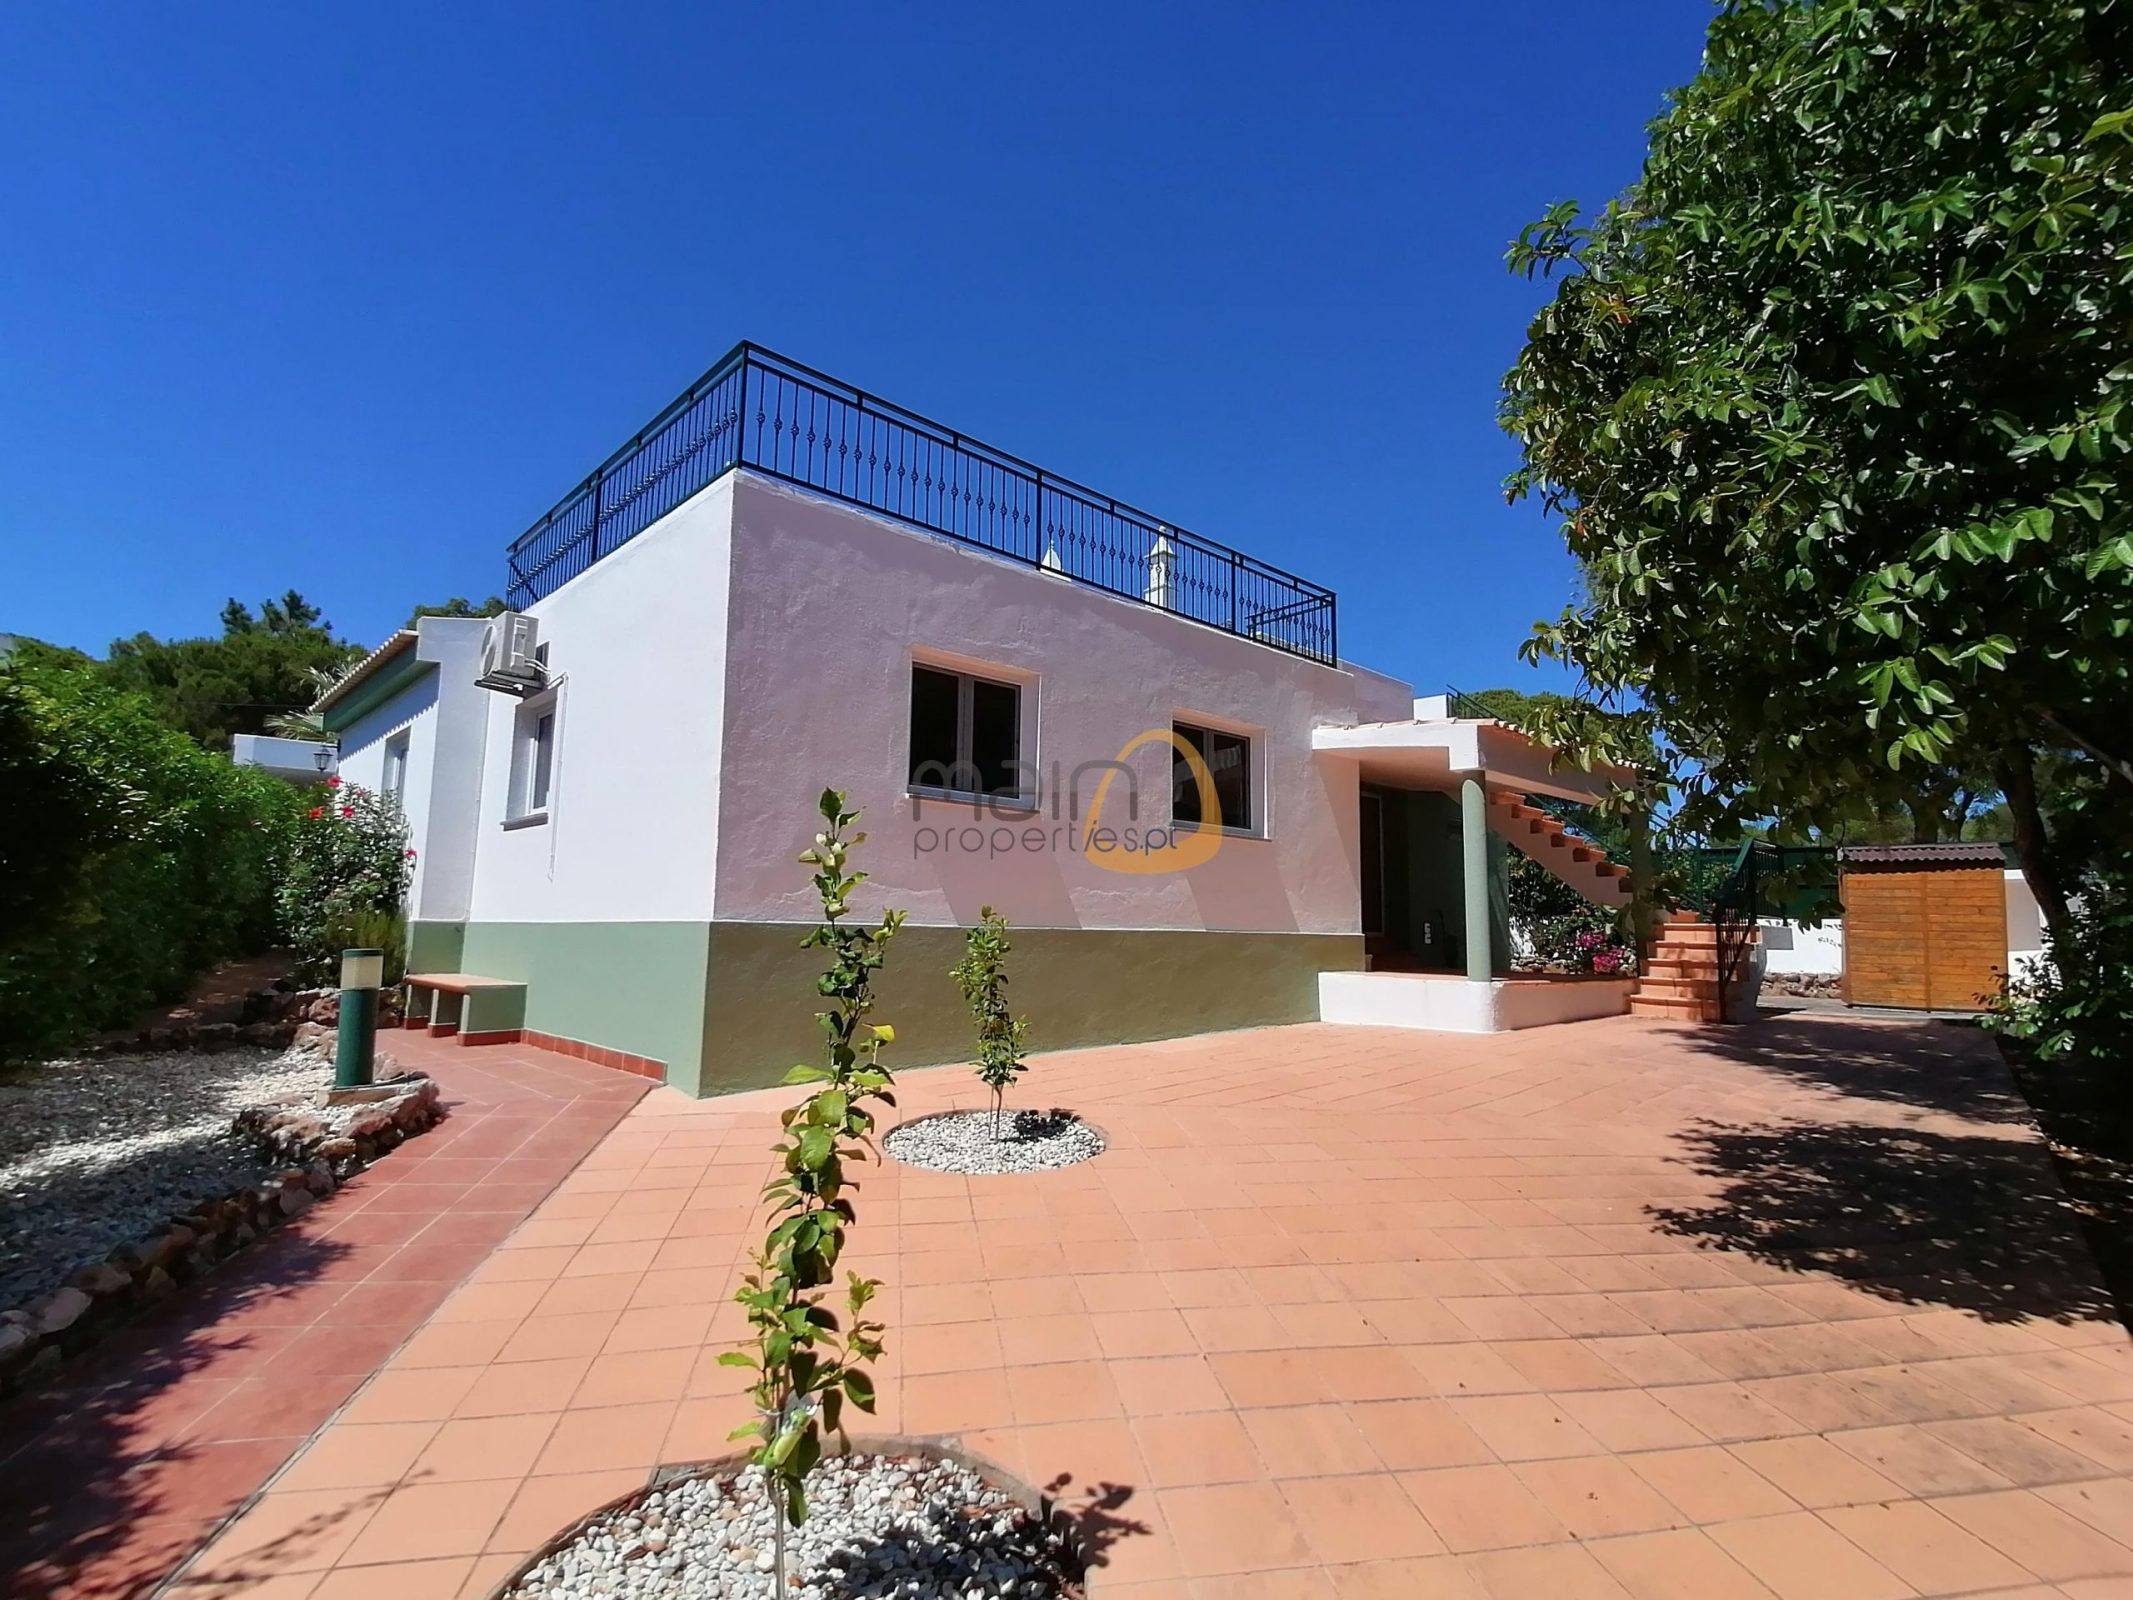 4 bedroom villa near Vale do Lobo